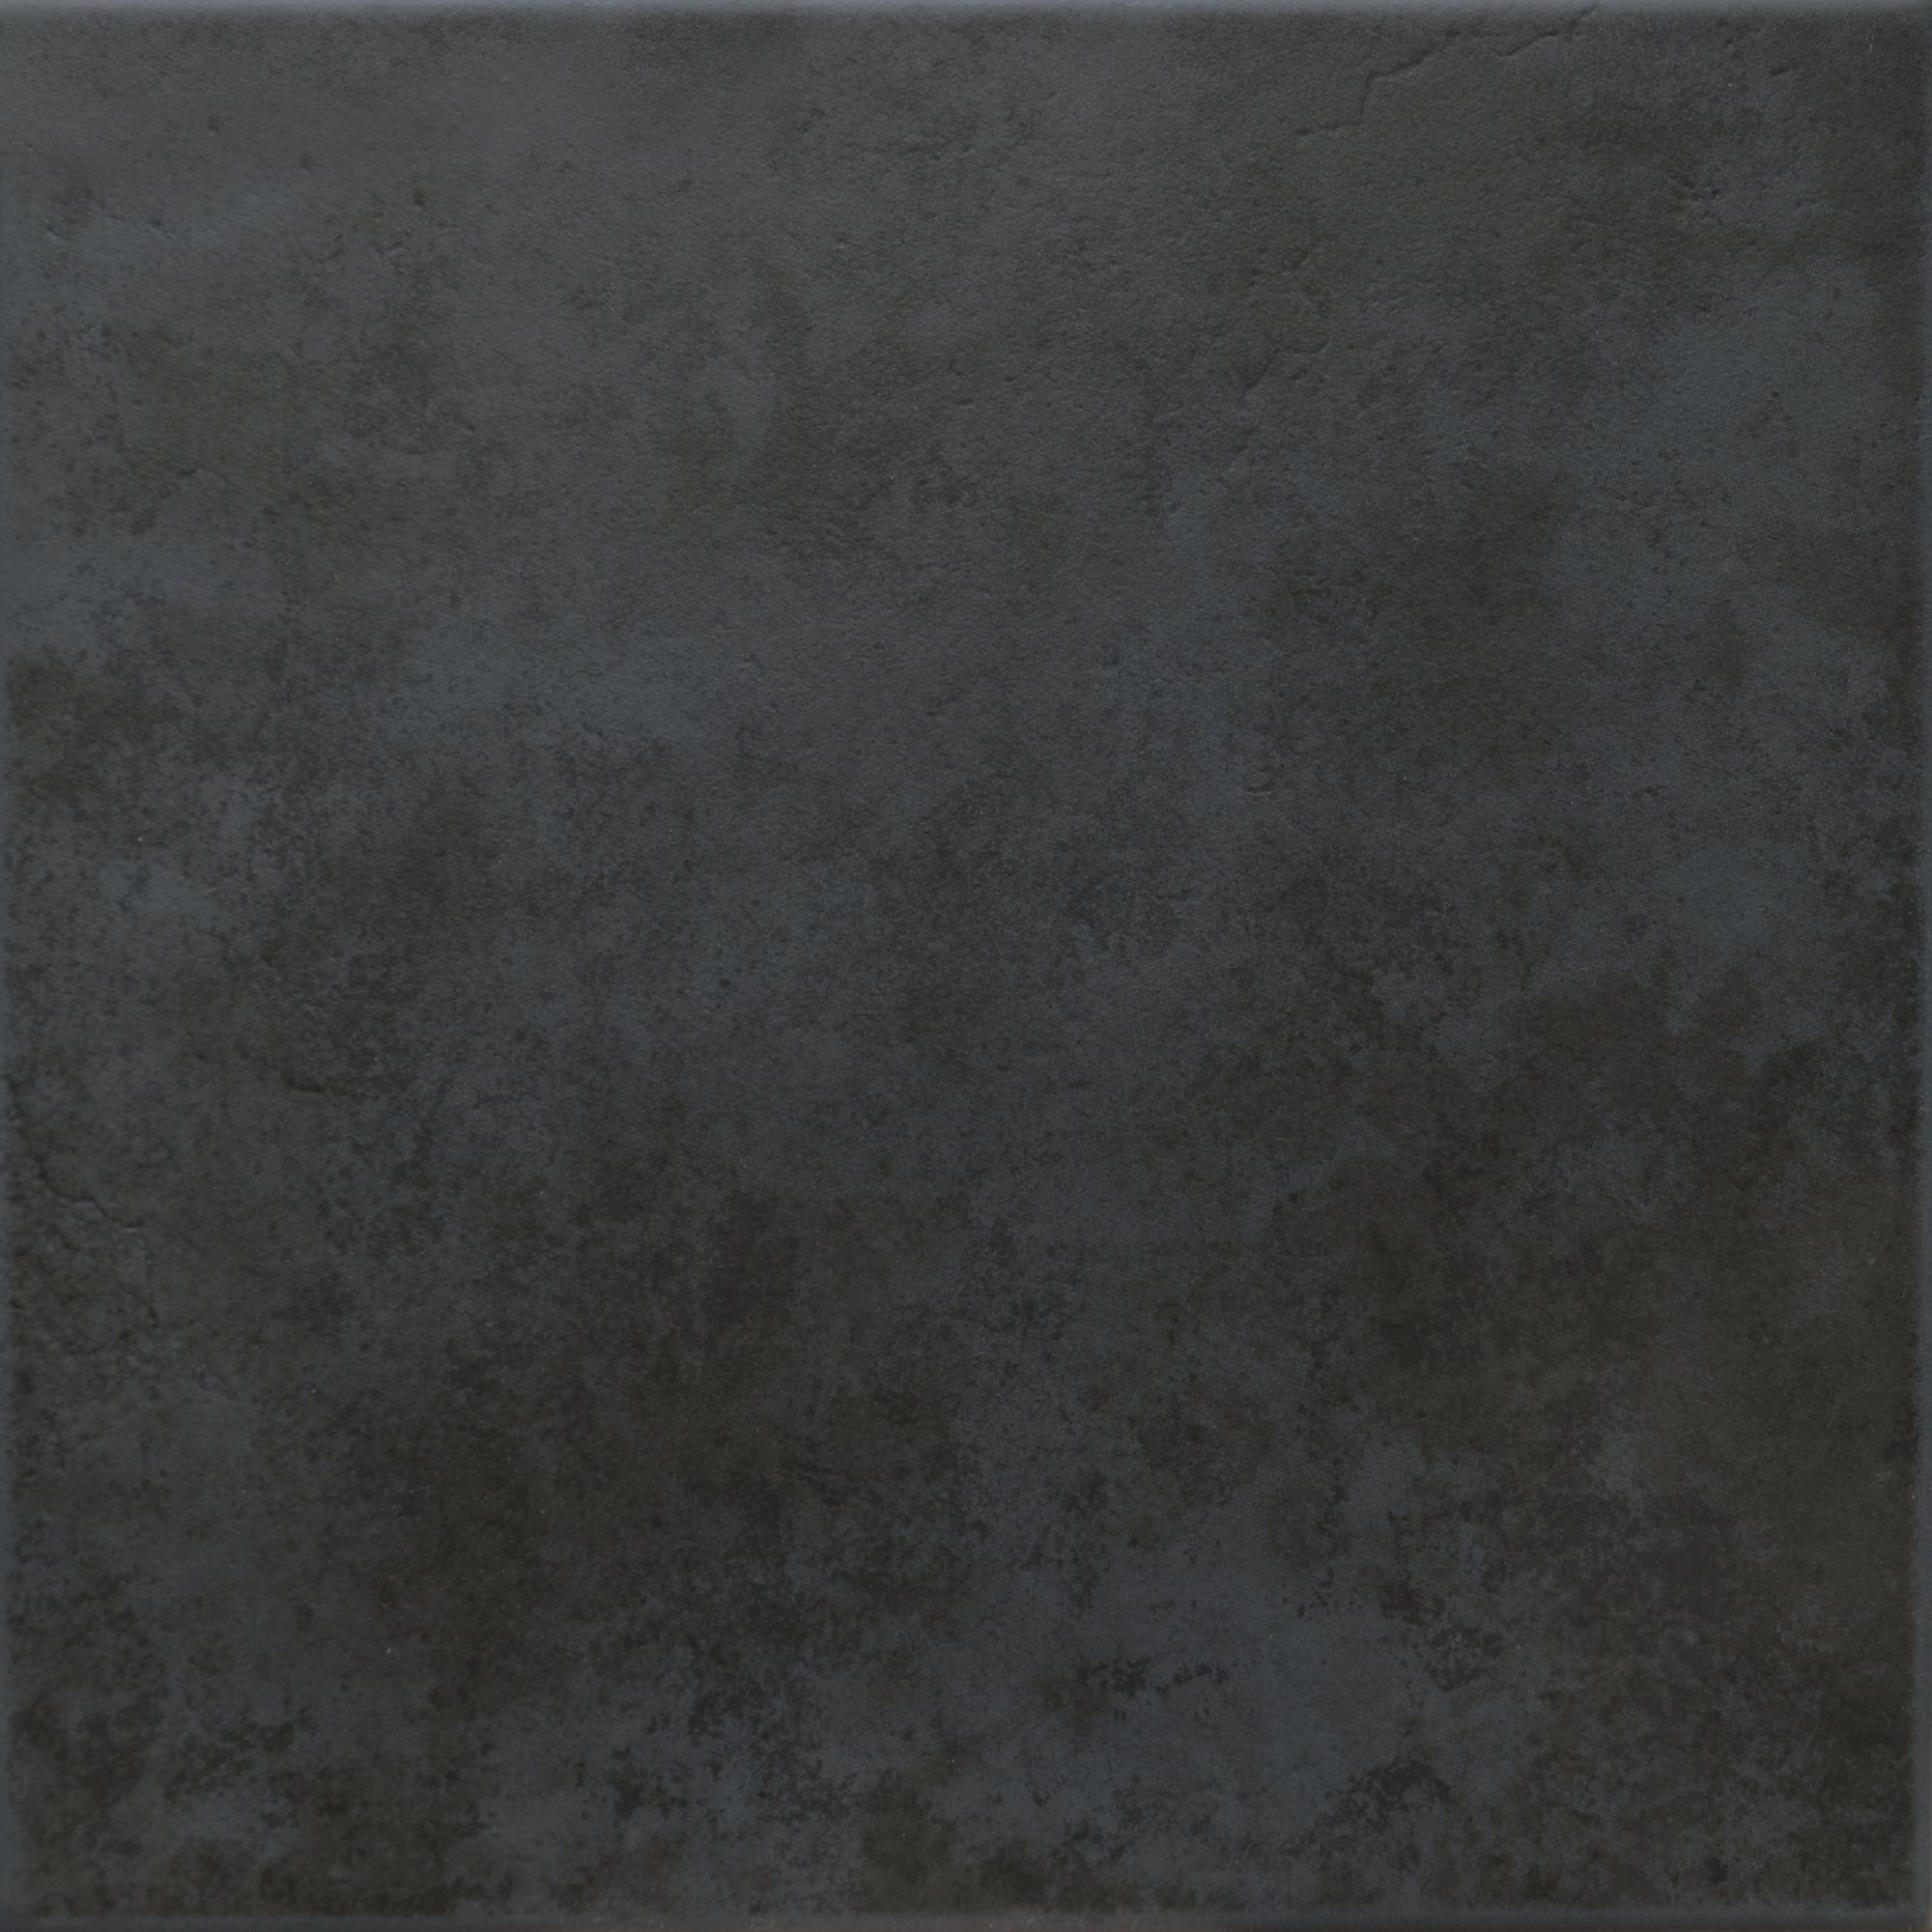 Cotto 330 x 330mm thaicera agra charcoal ceramic floor tile cotto 330 x 330mm thaicera agra charcoal ceramic floor tile bunnings warehouse dailygadgetfo Gallery